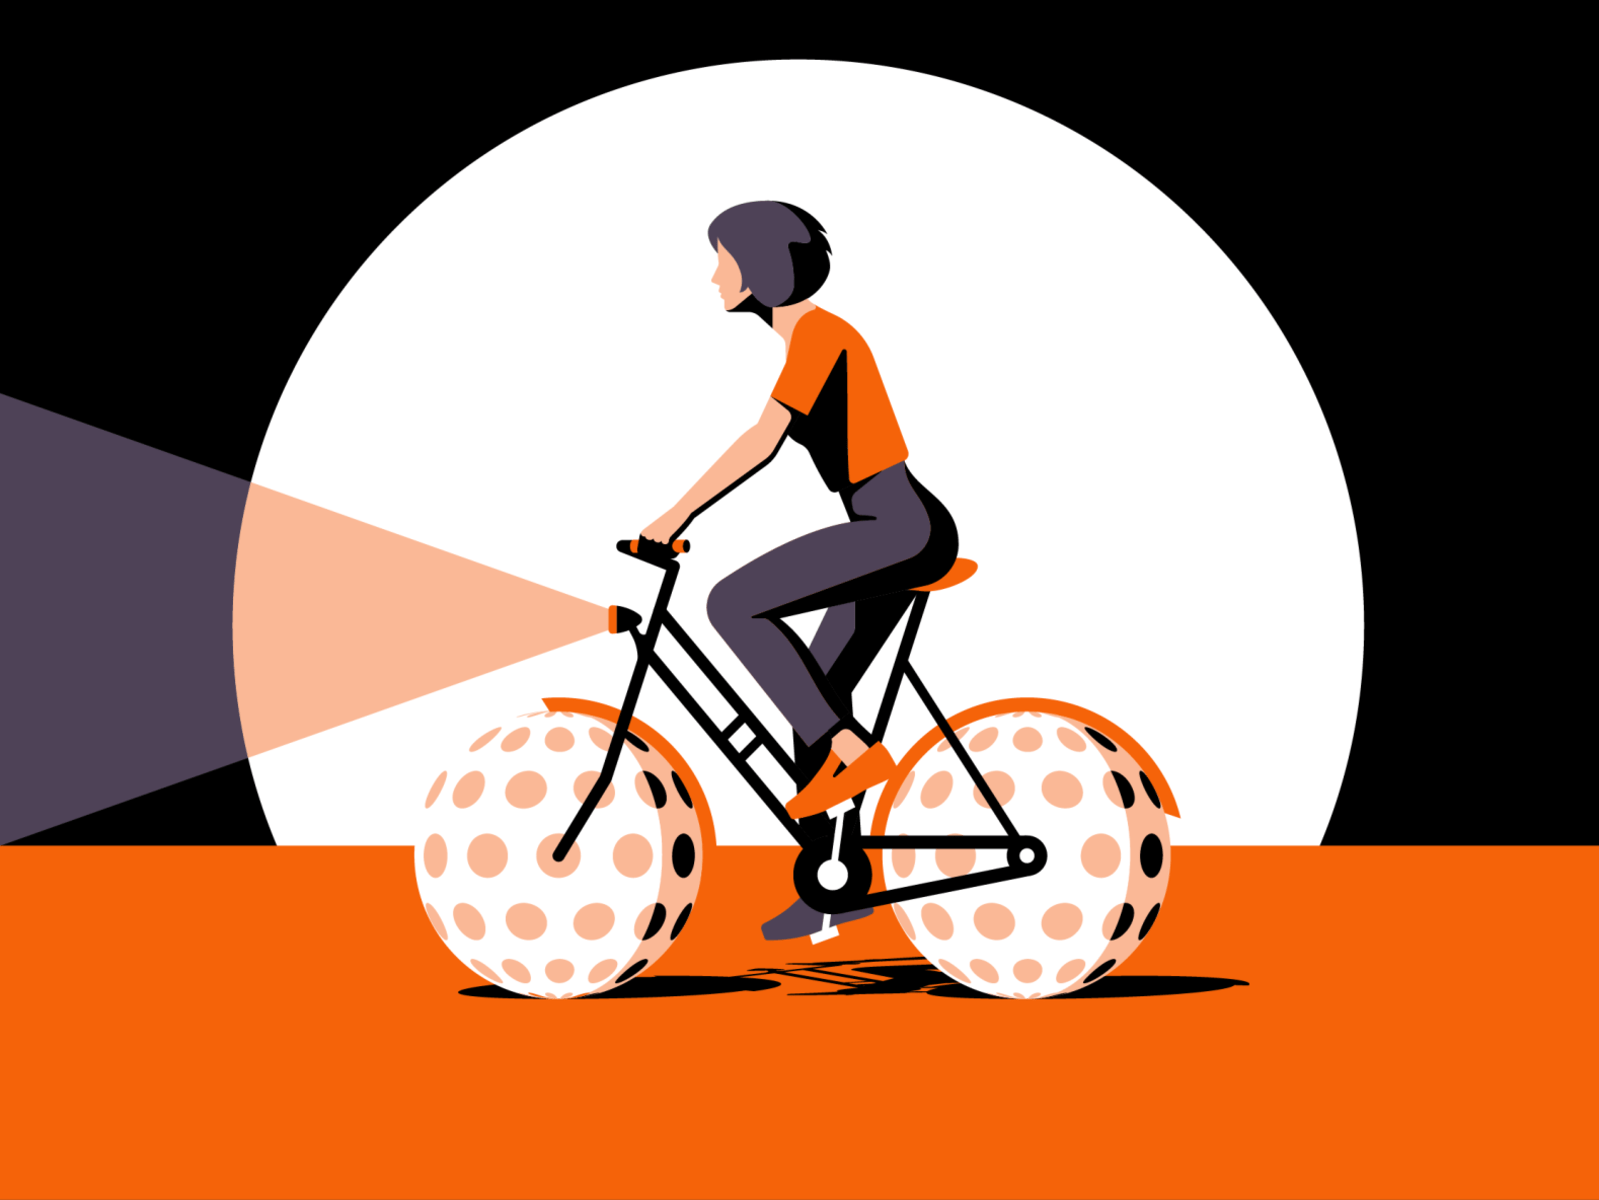 Bicycle by Jeremy Booth